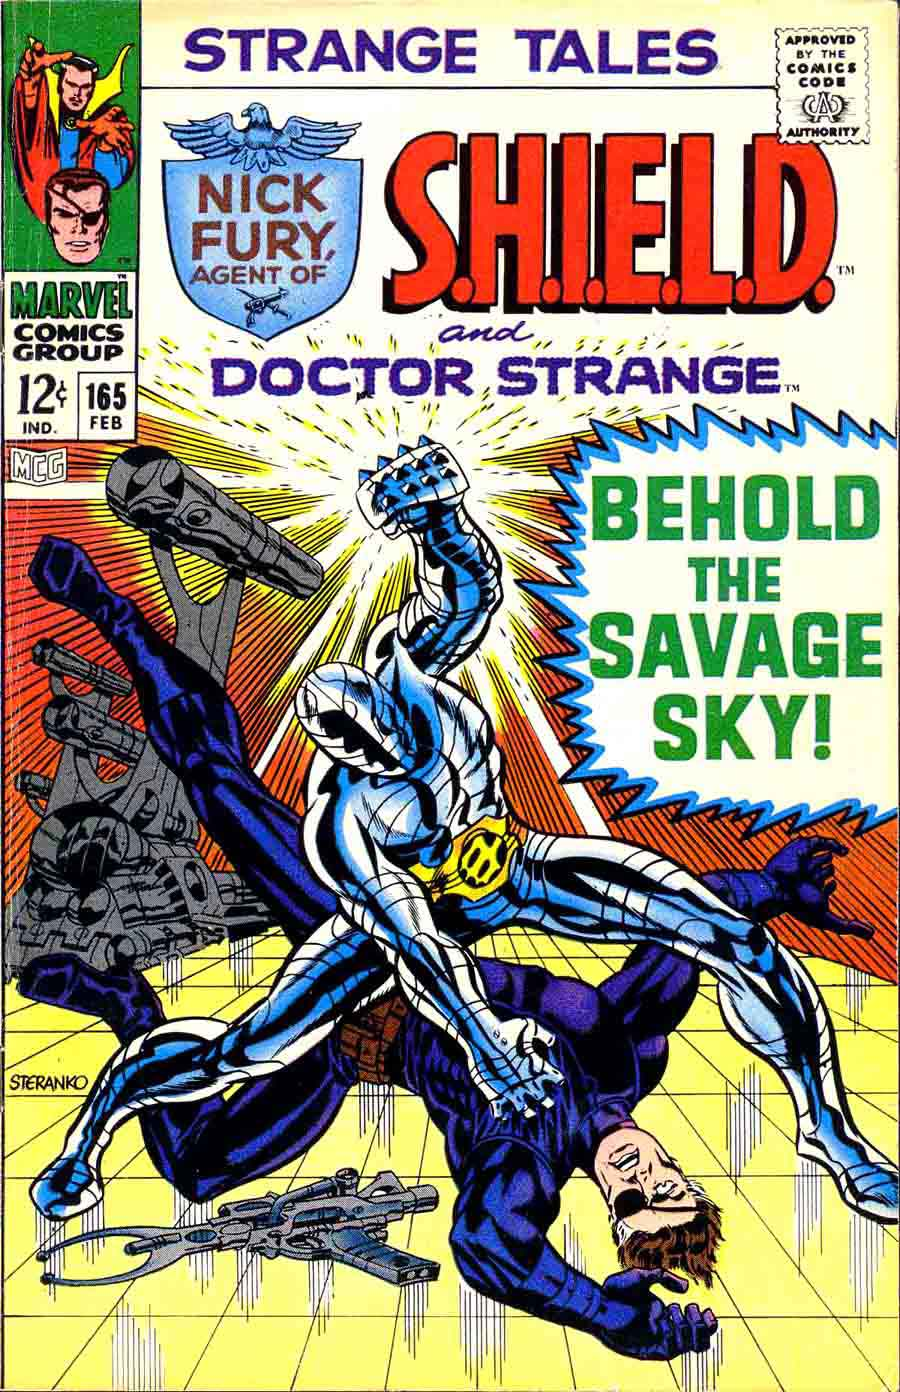 Strange Tales v1 #165 nick fury shield comic book cover art by Jim Steranko